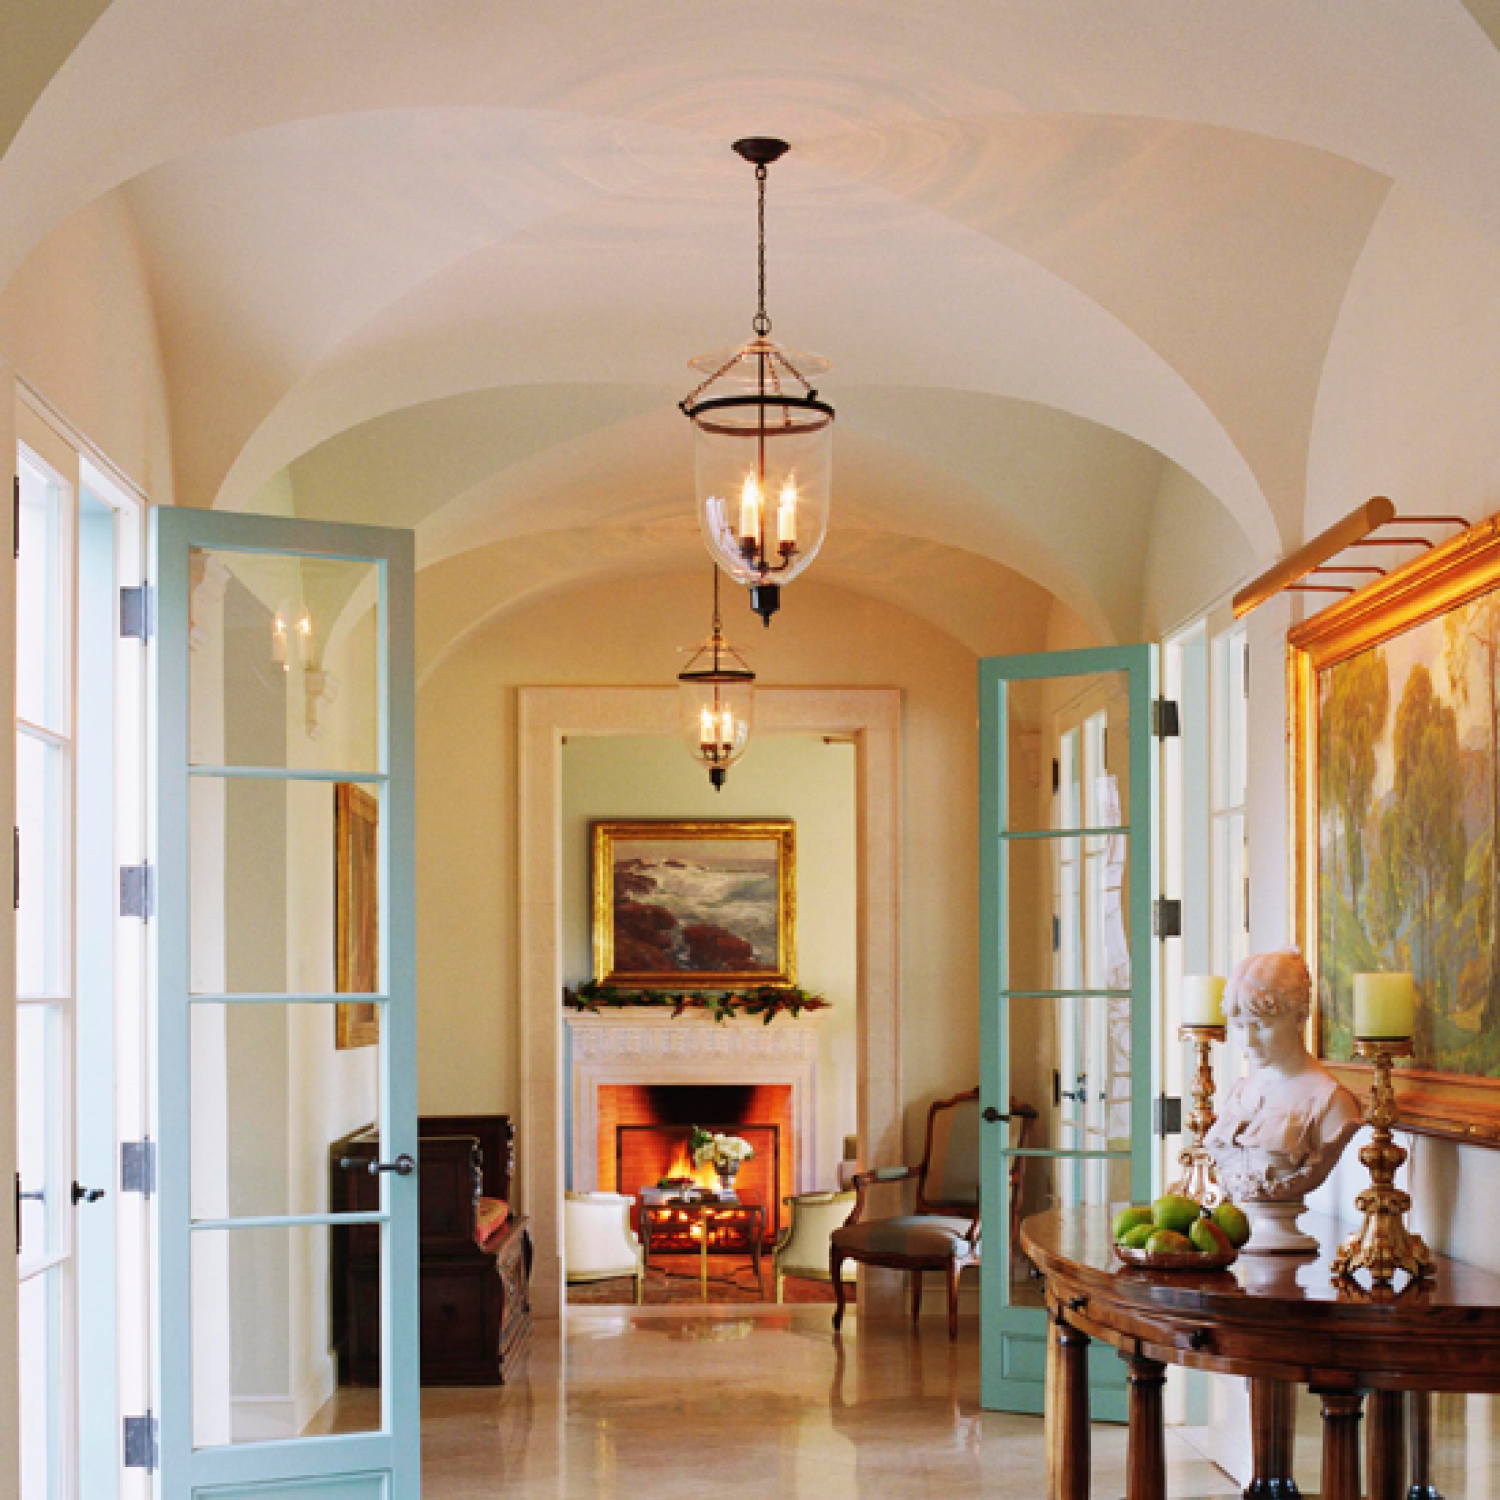 Top 10 Small Elegant Home Interior: Simple Elegance: Holiday Décor In A Mediterranean-style